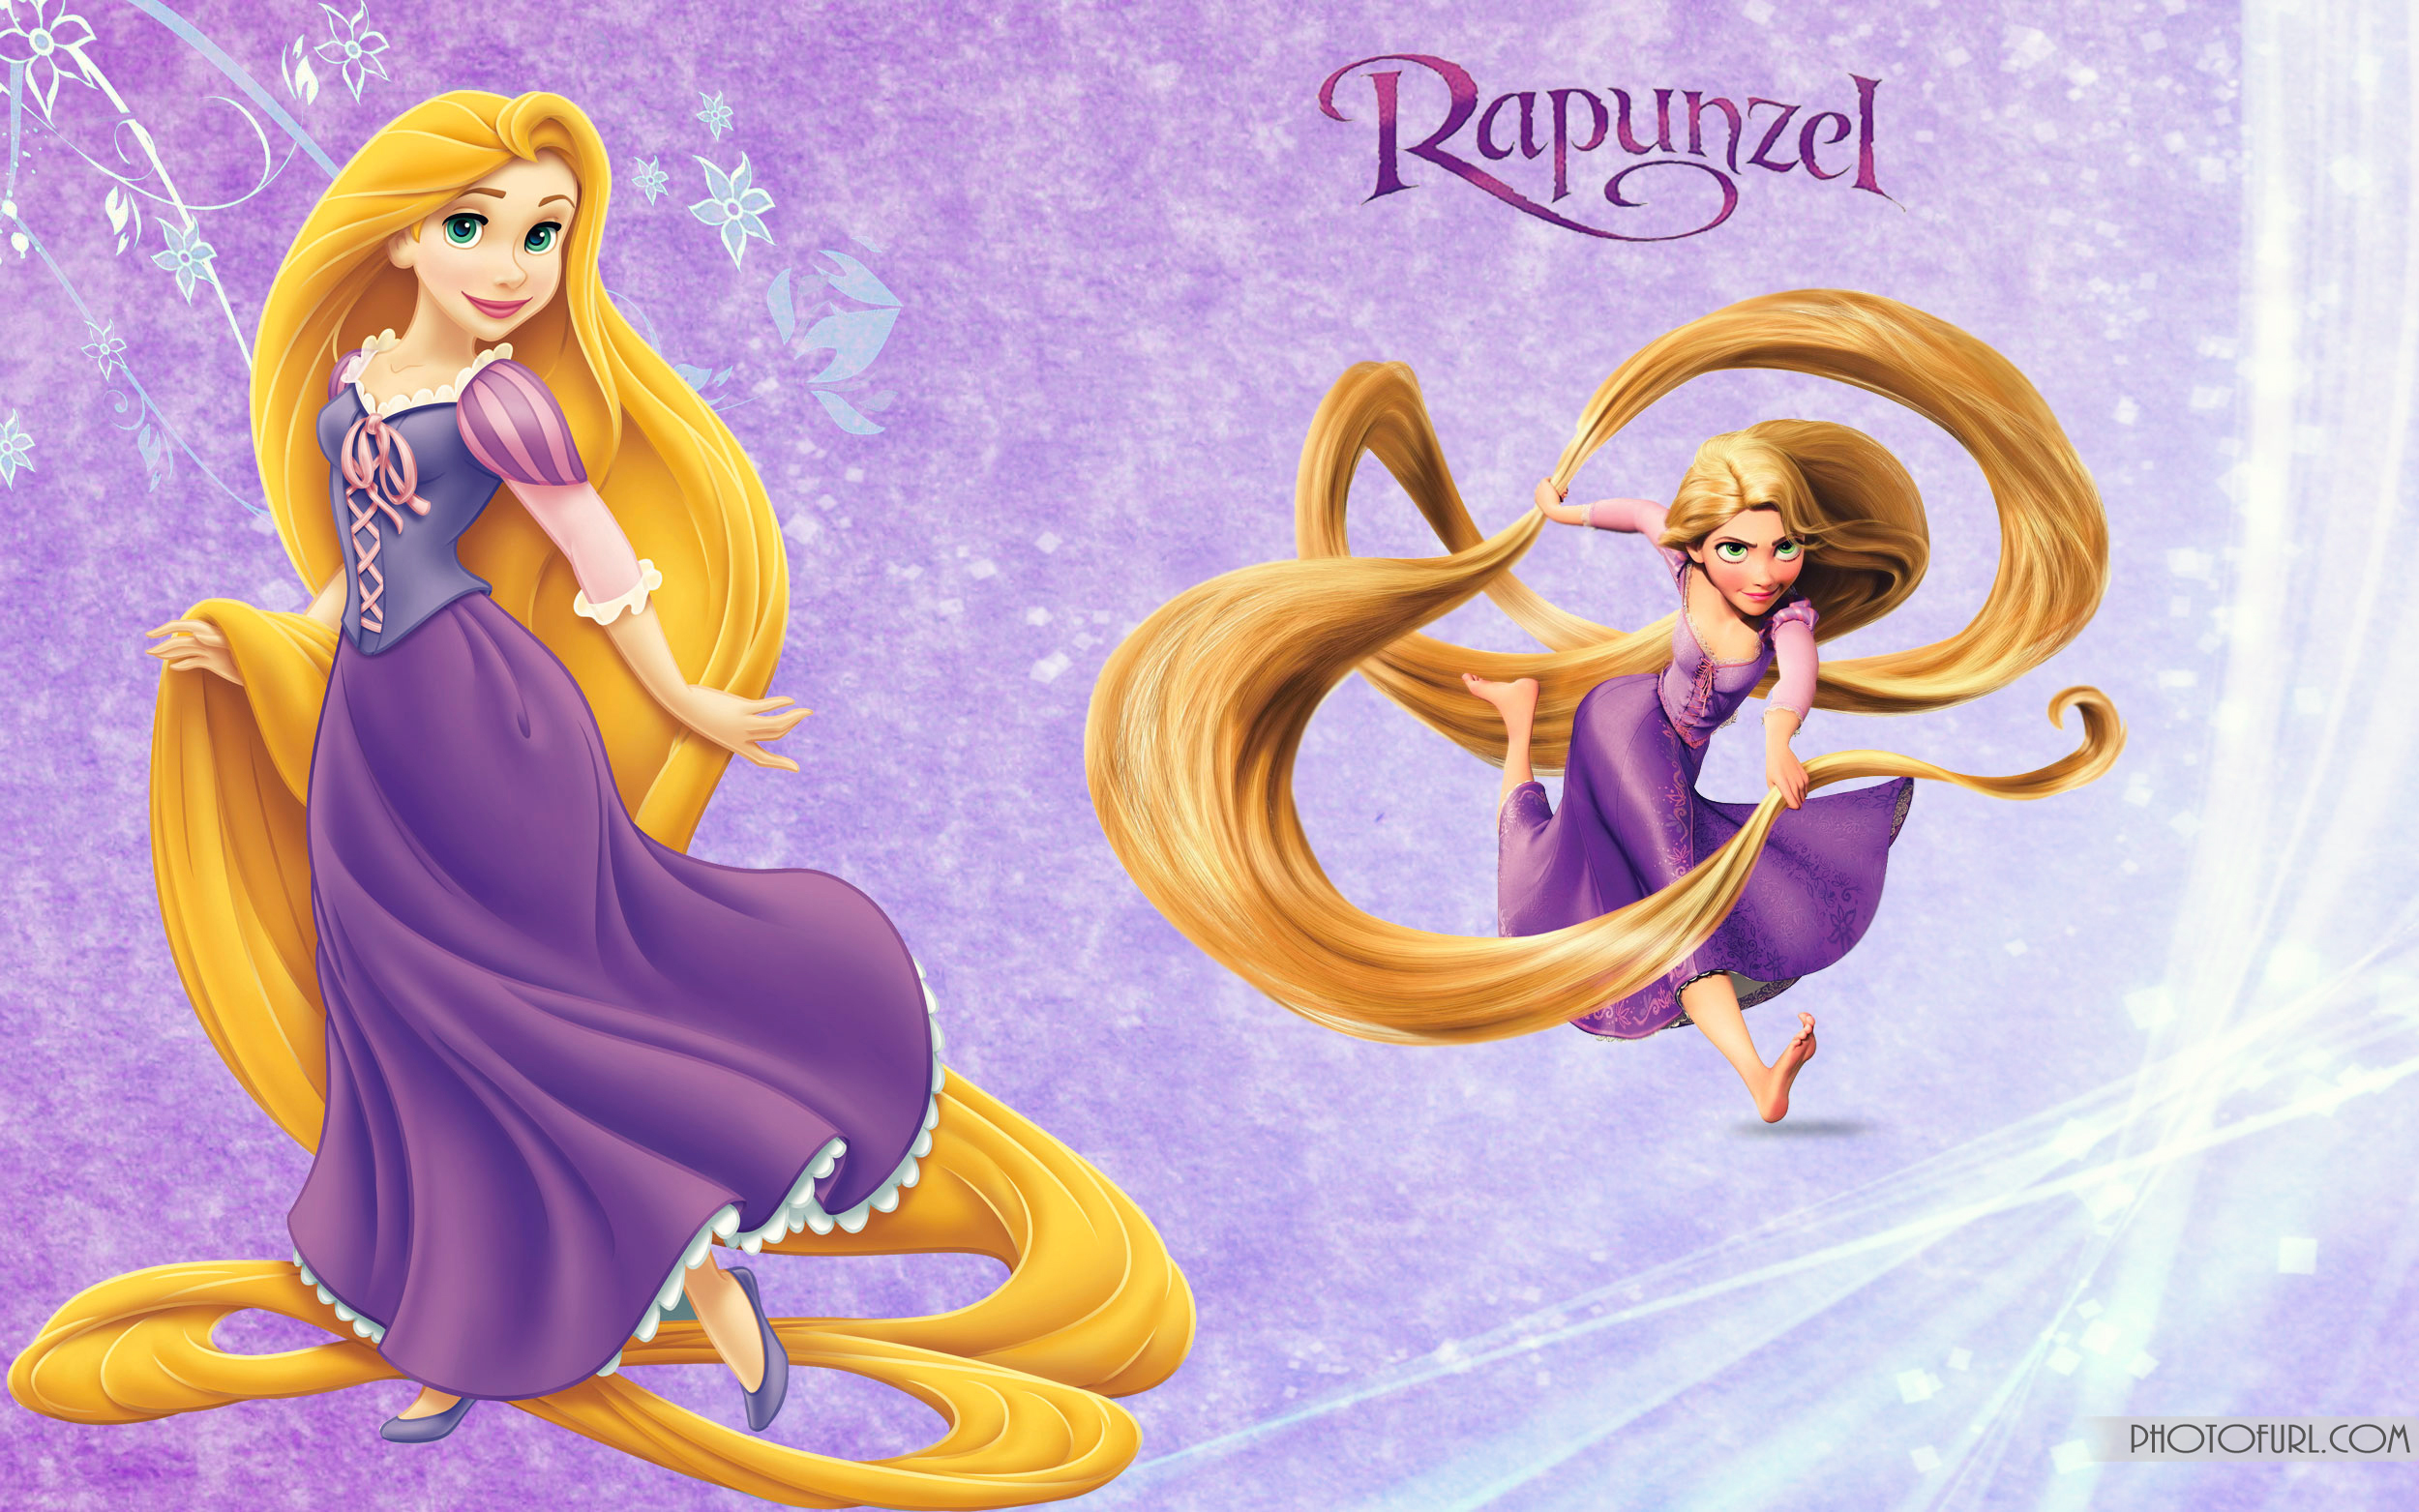 Rapunzel Wallpaper 33 High Quality Rapunzel Wallpapers 2500x1563